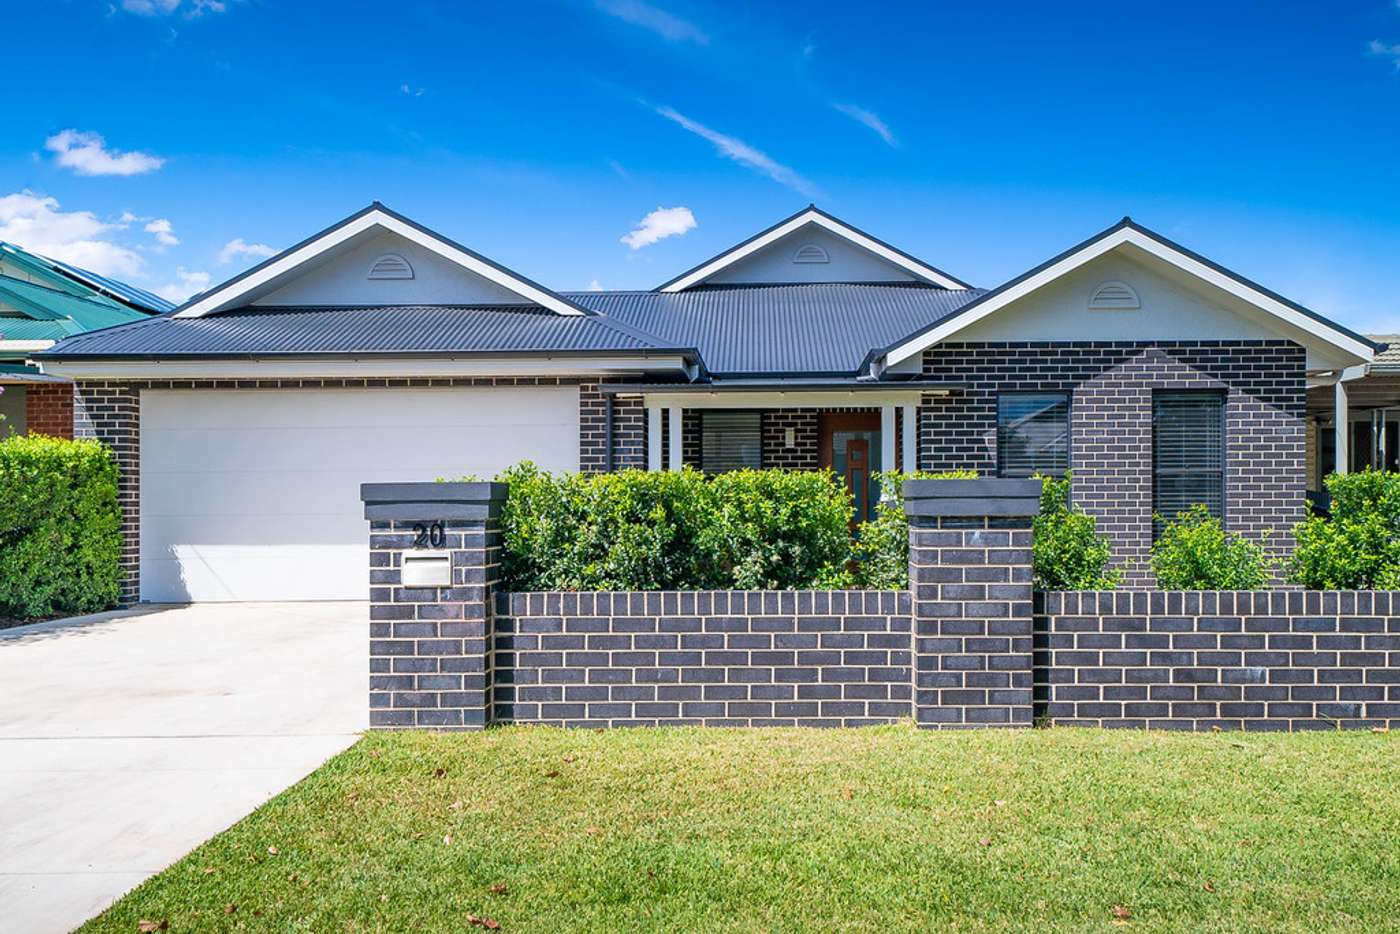 Main view of Homely house listing, 20 Rhoda Avenue, Wagga Wagga NSW 2650